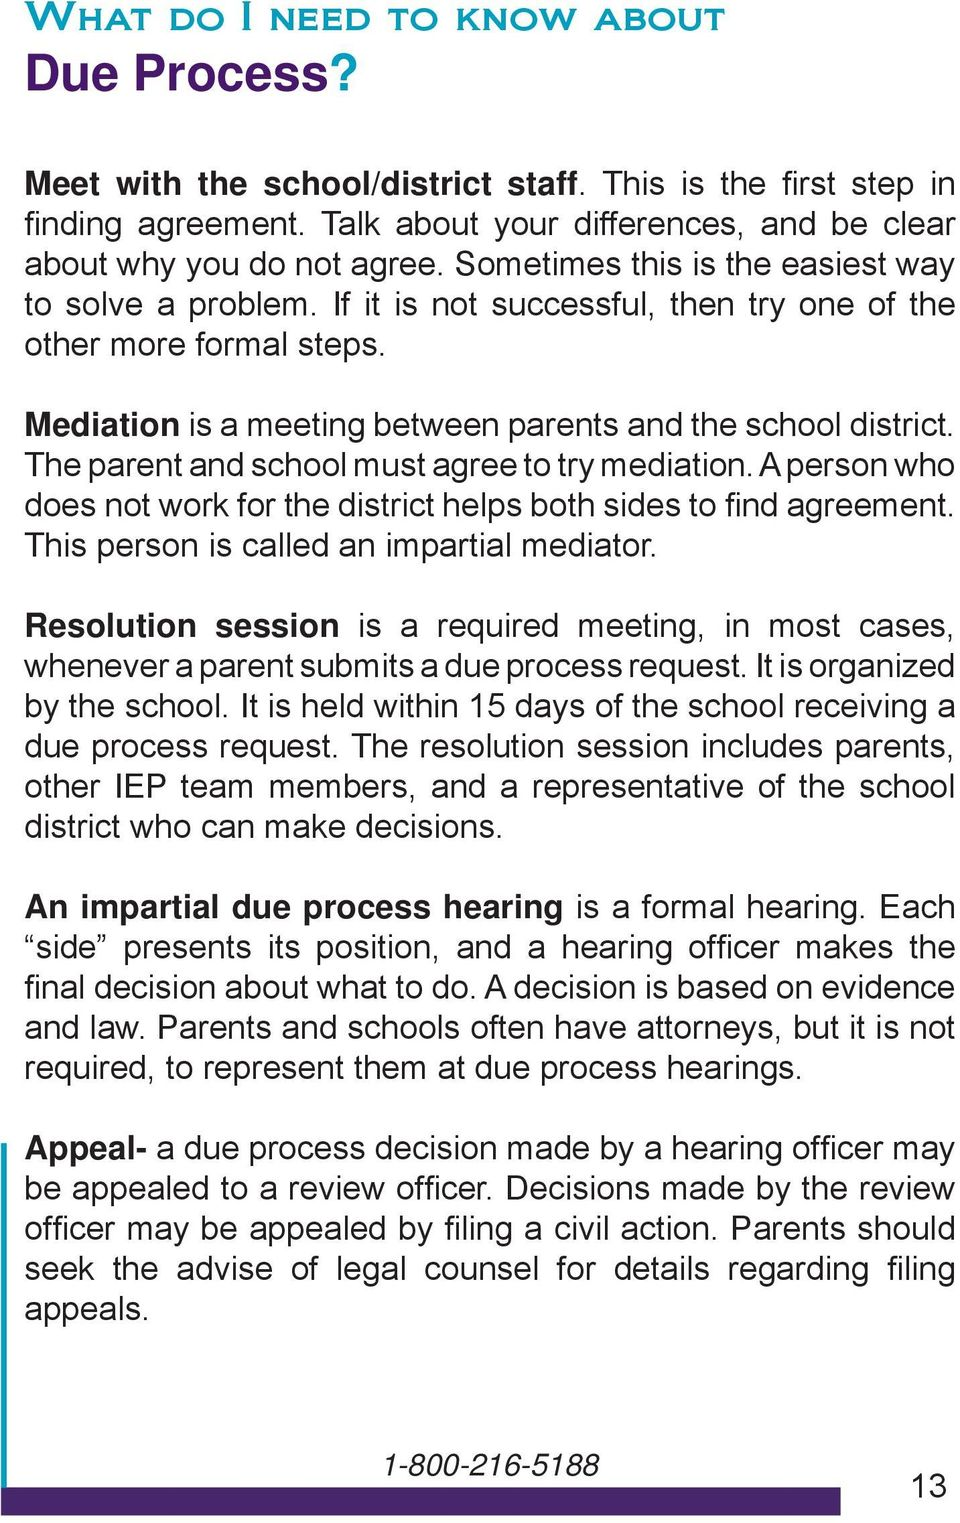 The parent and school must agree to try mediation. A person who does not work for the district helps both sides to fi nd agreement. This person is called an impartial mediator.